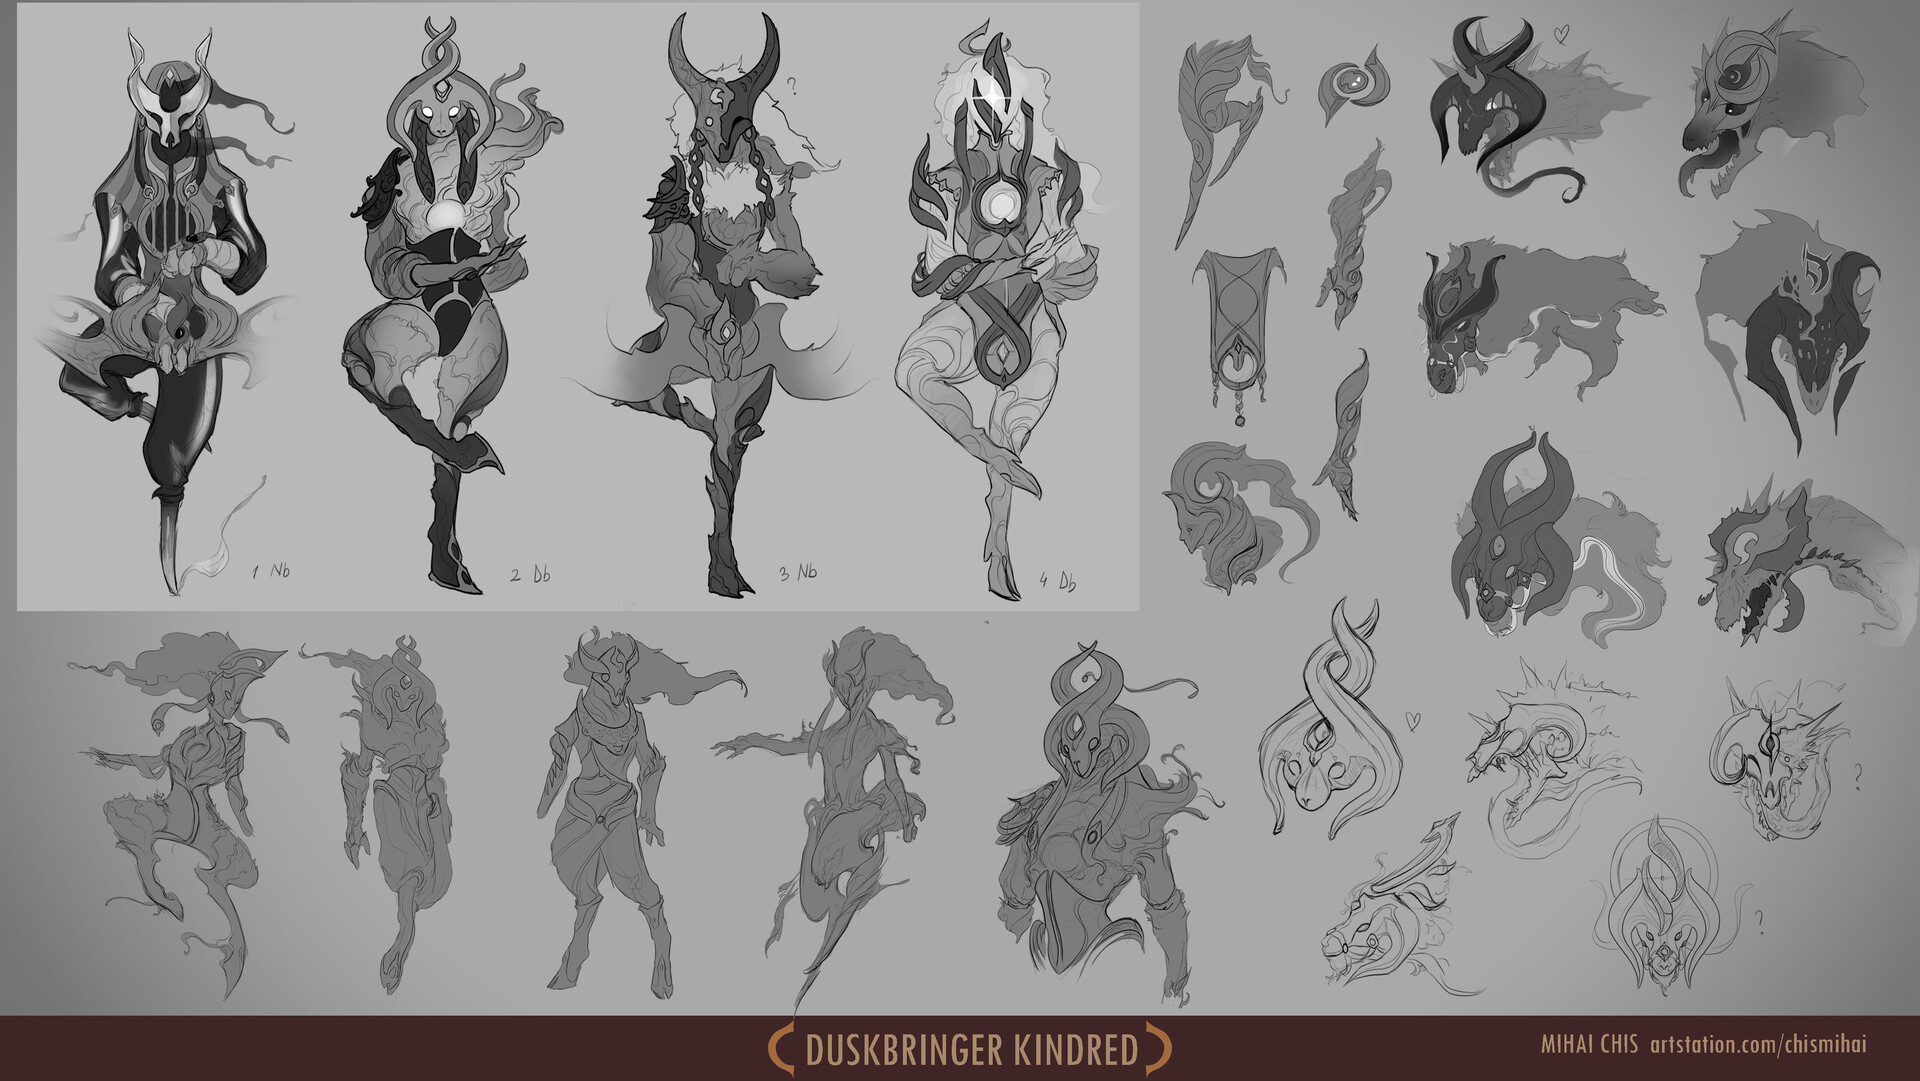 My final 4 designs for Lamb and more sketches I had done along the design process. As for wolf, I adored the idea of making order an armoured horse with reins and chaos with broken chains, unleashed.